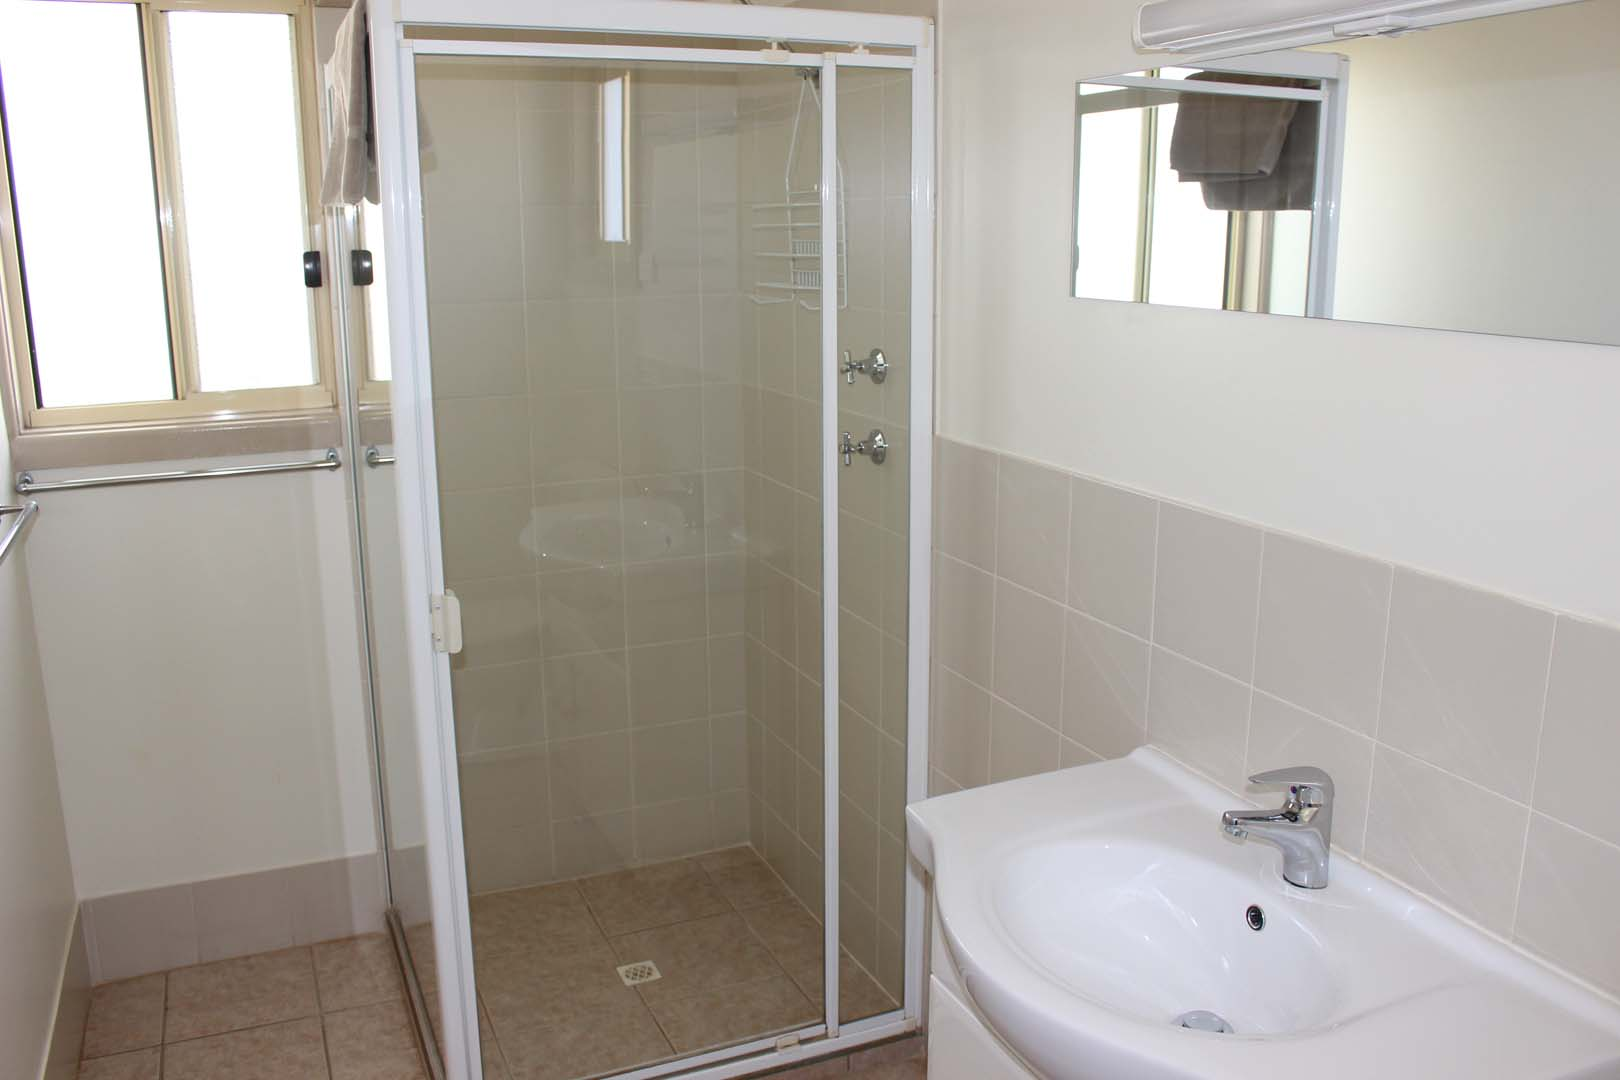 fuller-views-cabin-park-shower-mirror-sink